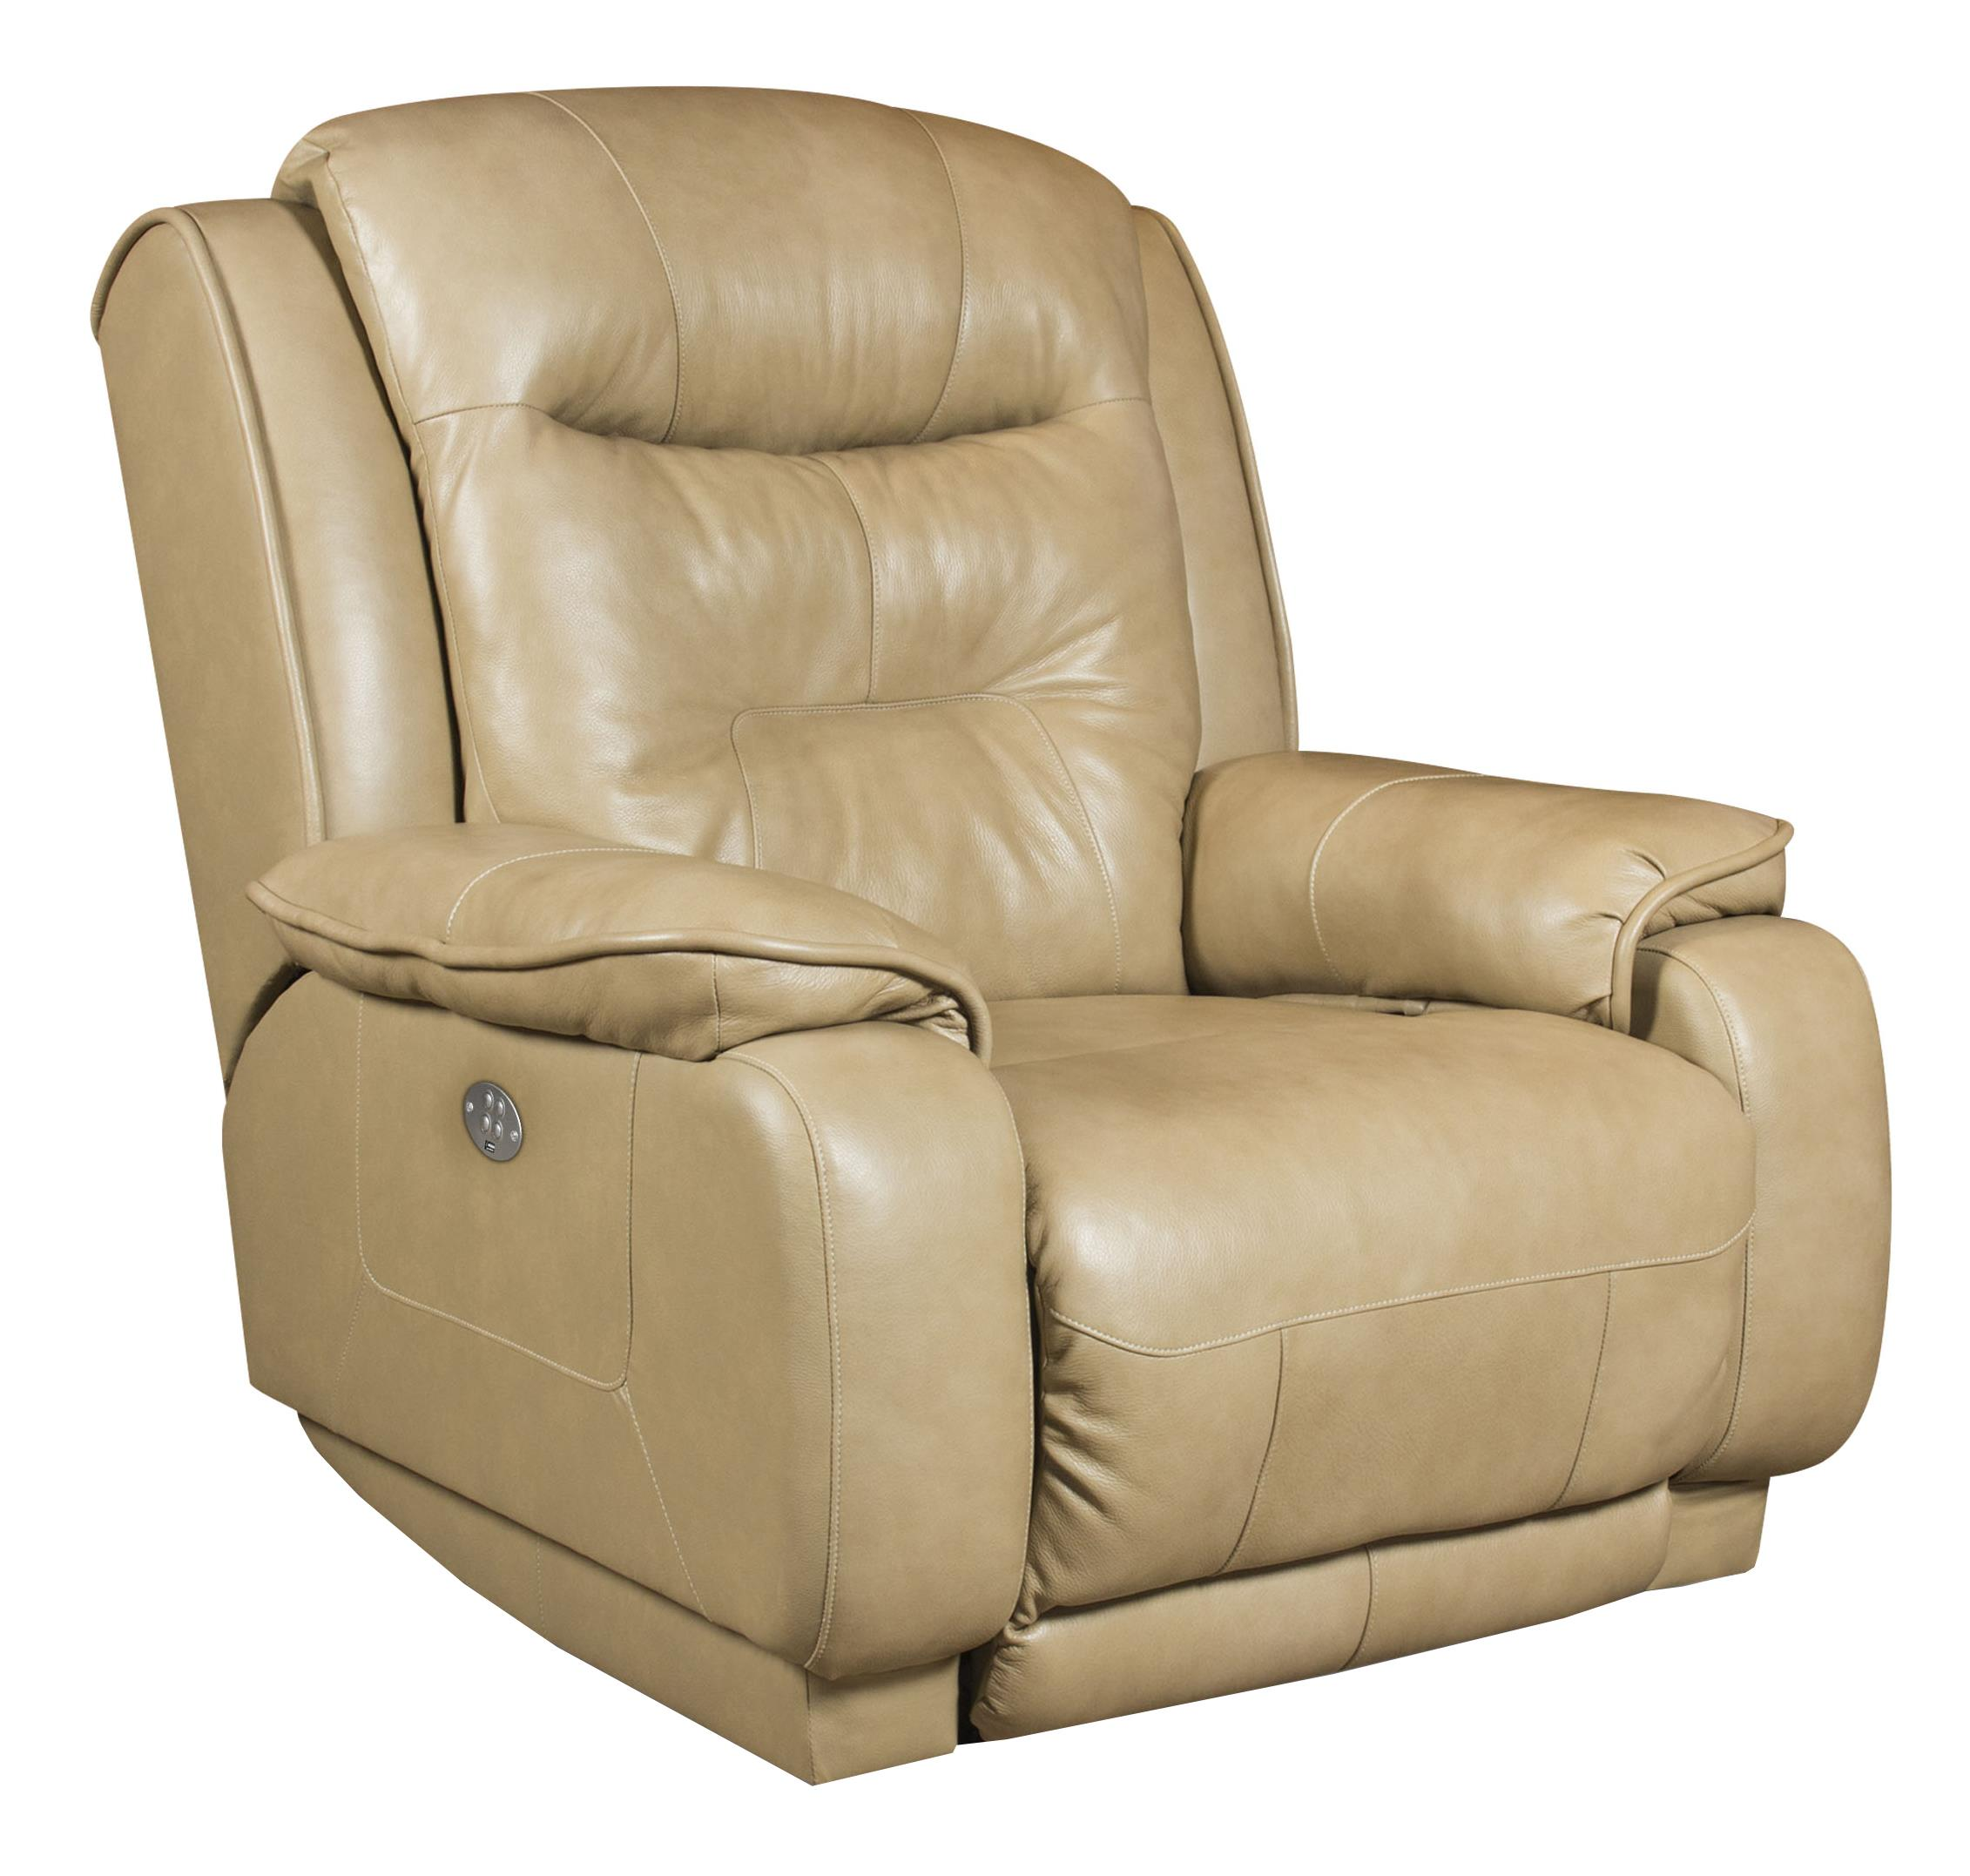 Southern Motion Crescent 2874p Wall Hugger Recliner With